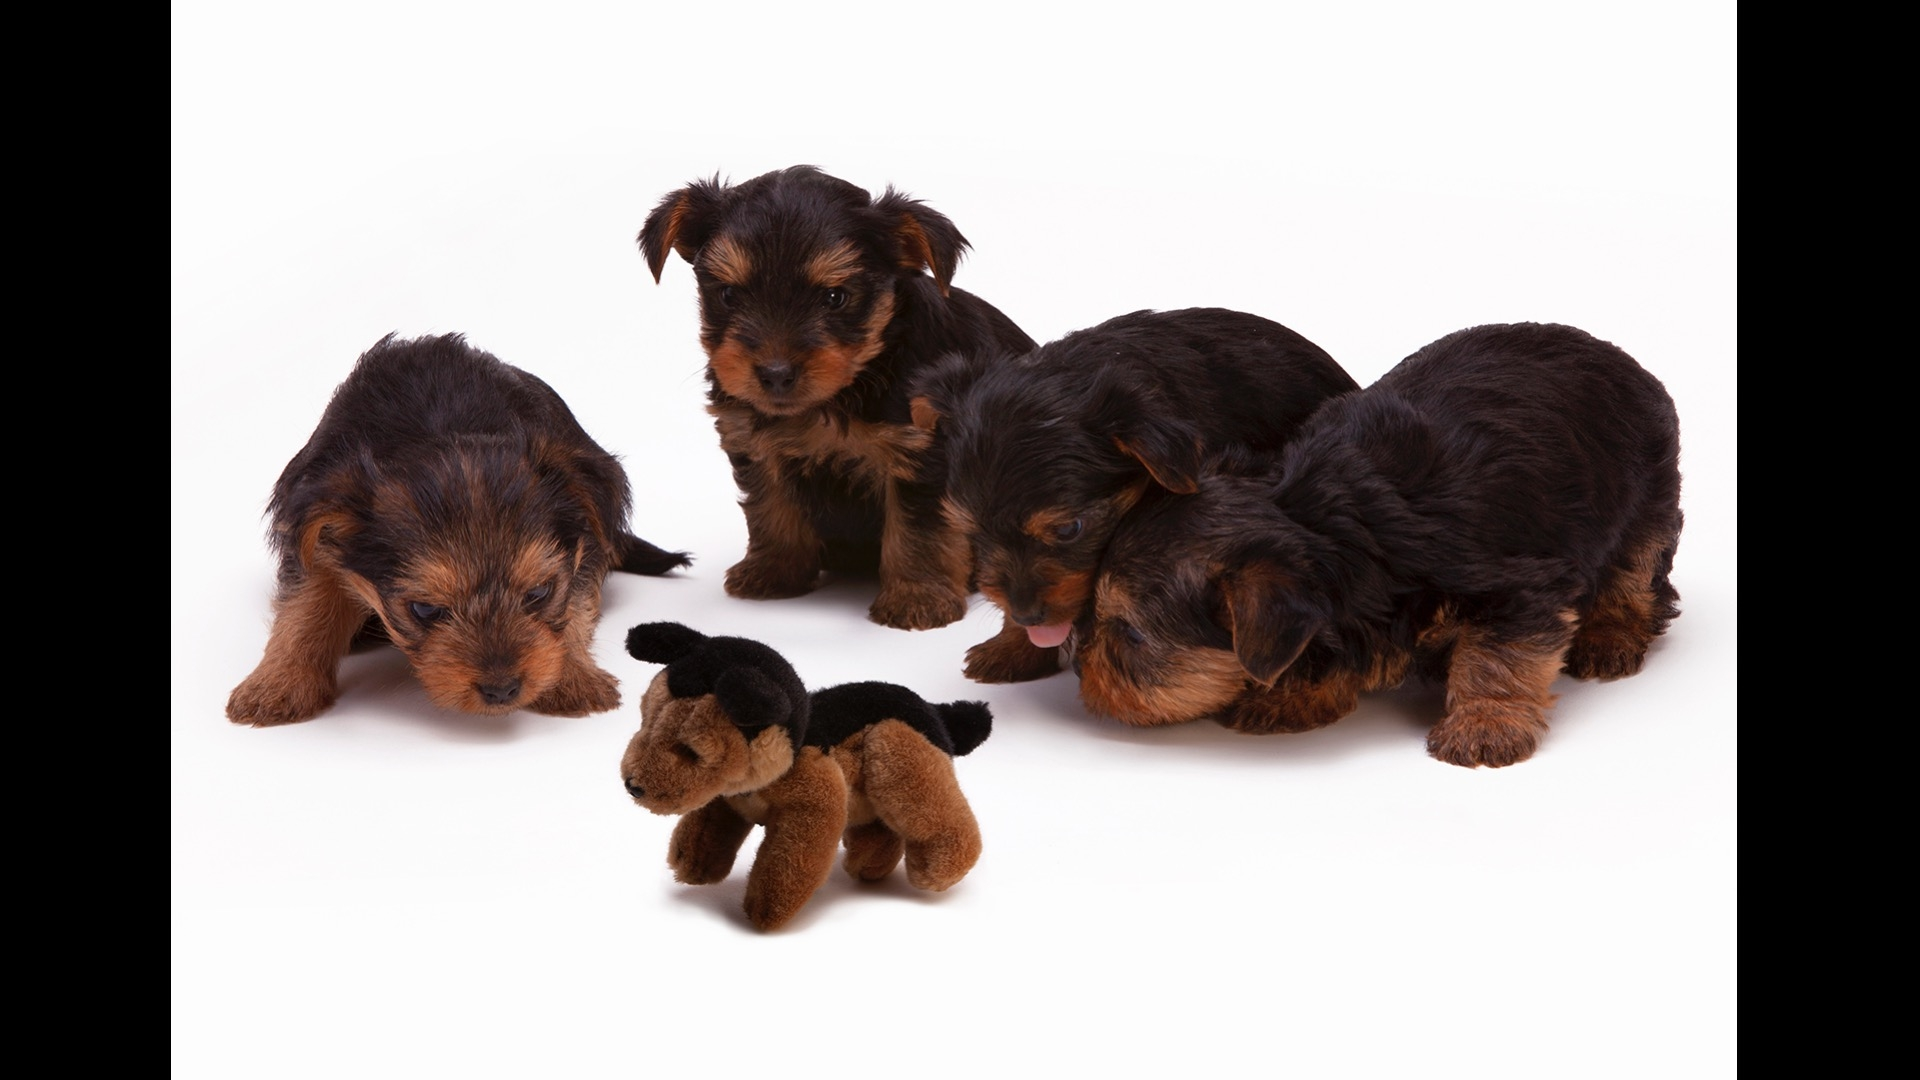 four puppies and a stuffed puppy